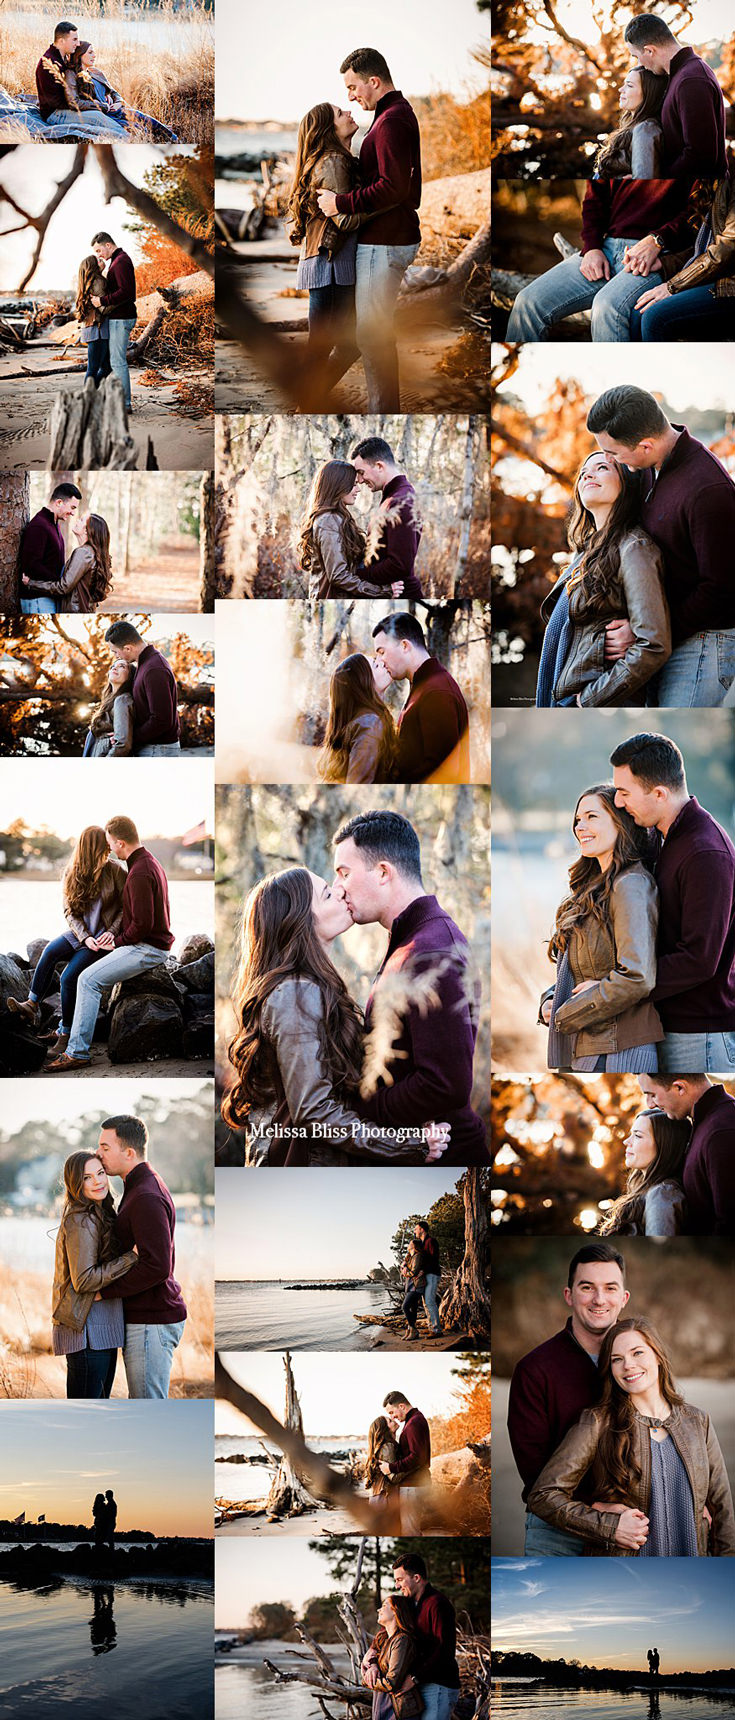 engagement-session-pictures-inspiration-outdoor-engagement-photos-melissa-bliss-photography-virginia-beach.jpg